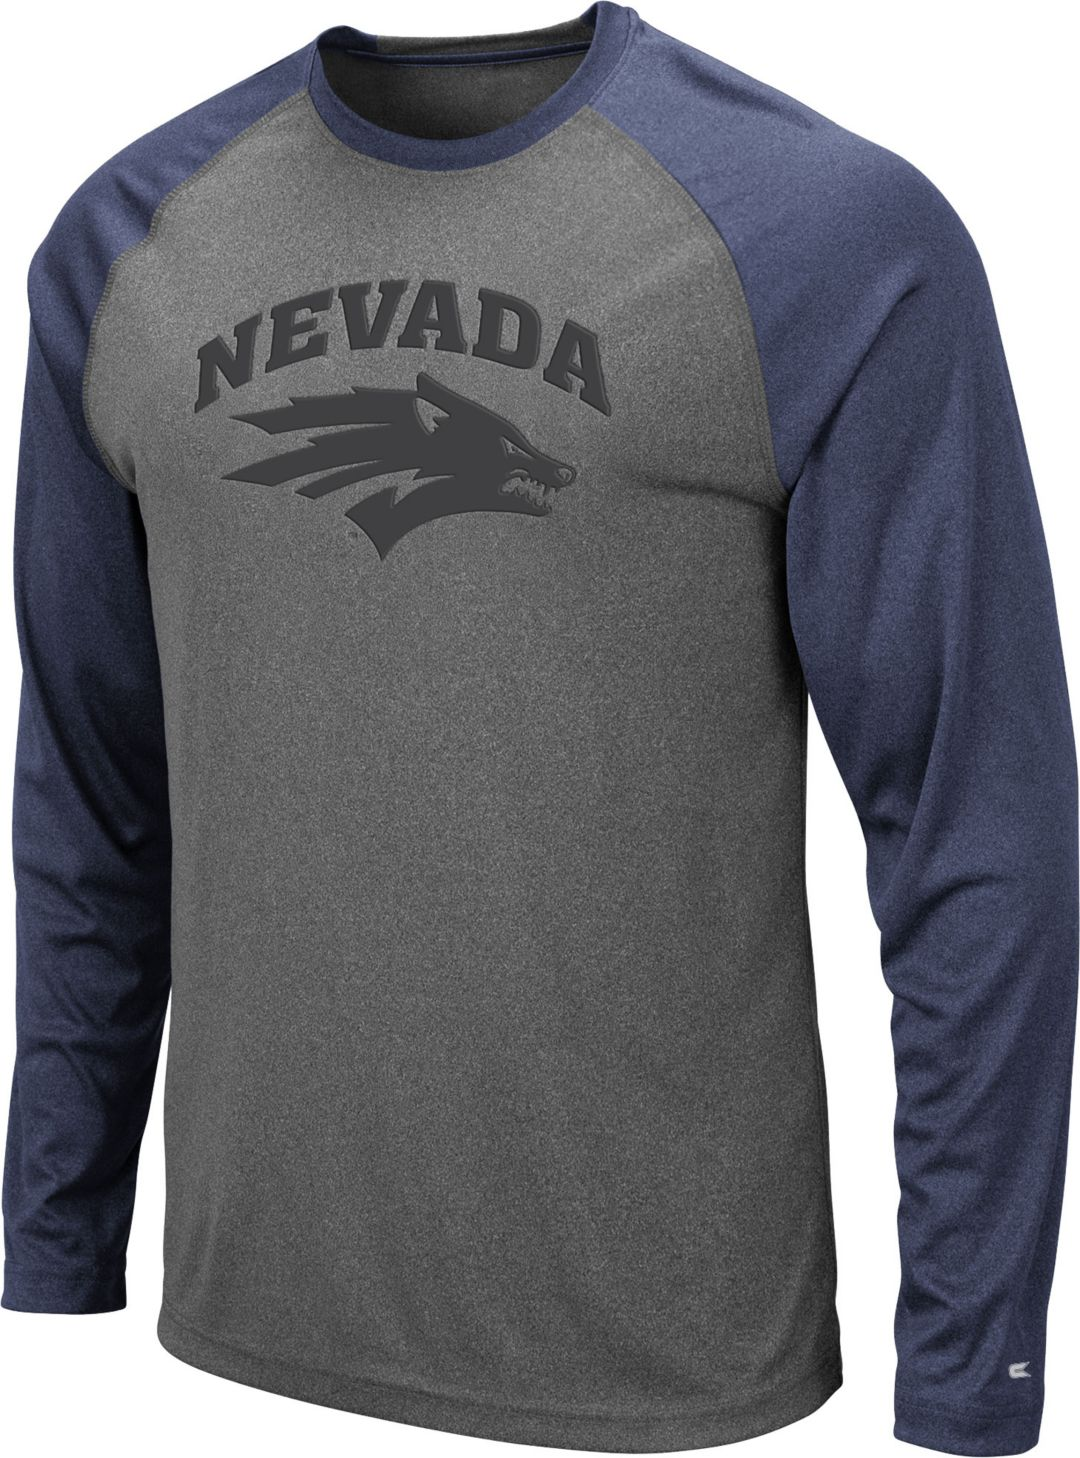 online store 837f2 5e8bd Colosseum Men's Nevada Wolf Pack Grey Rad Tad Raglan Long Sleeve T-Shirt